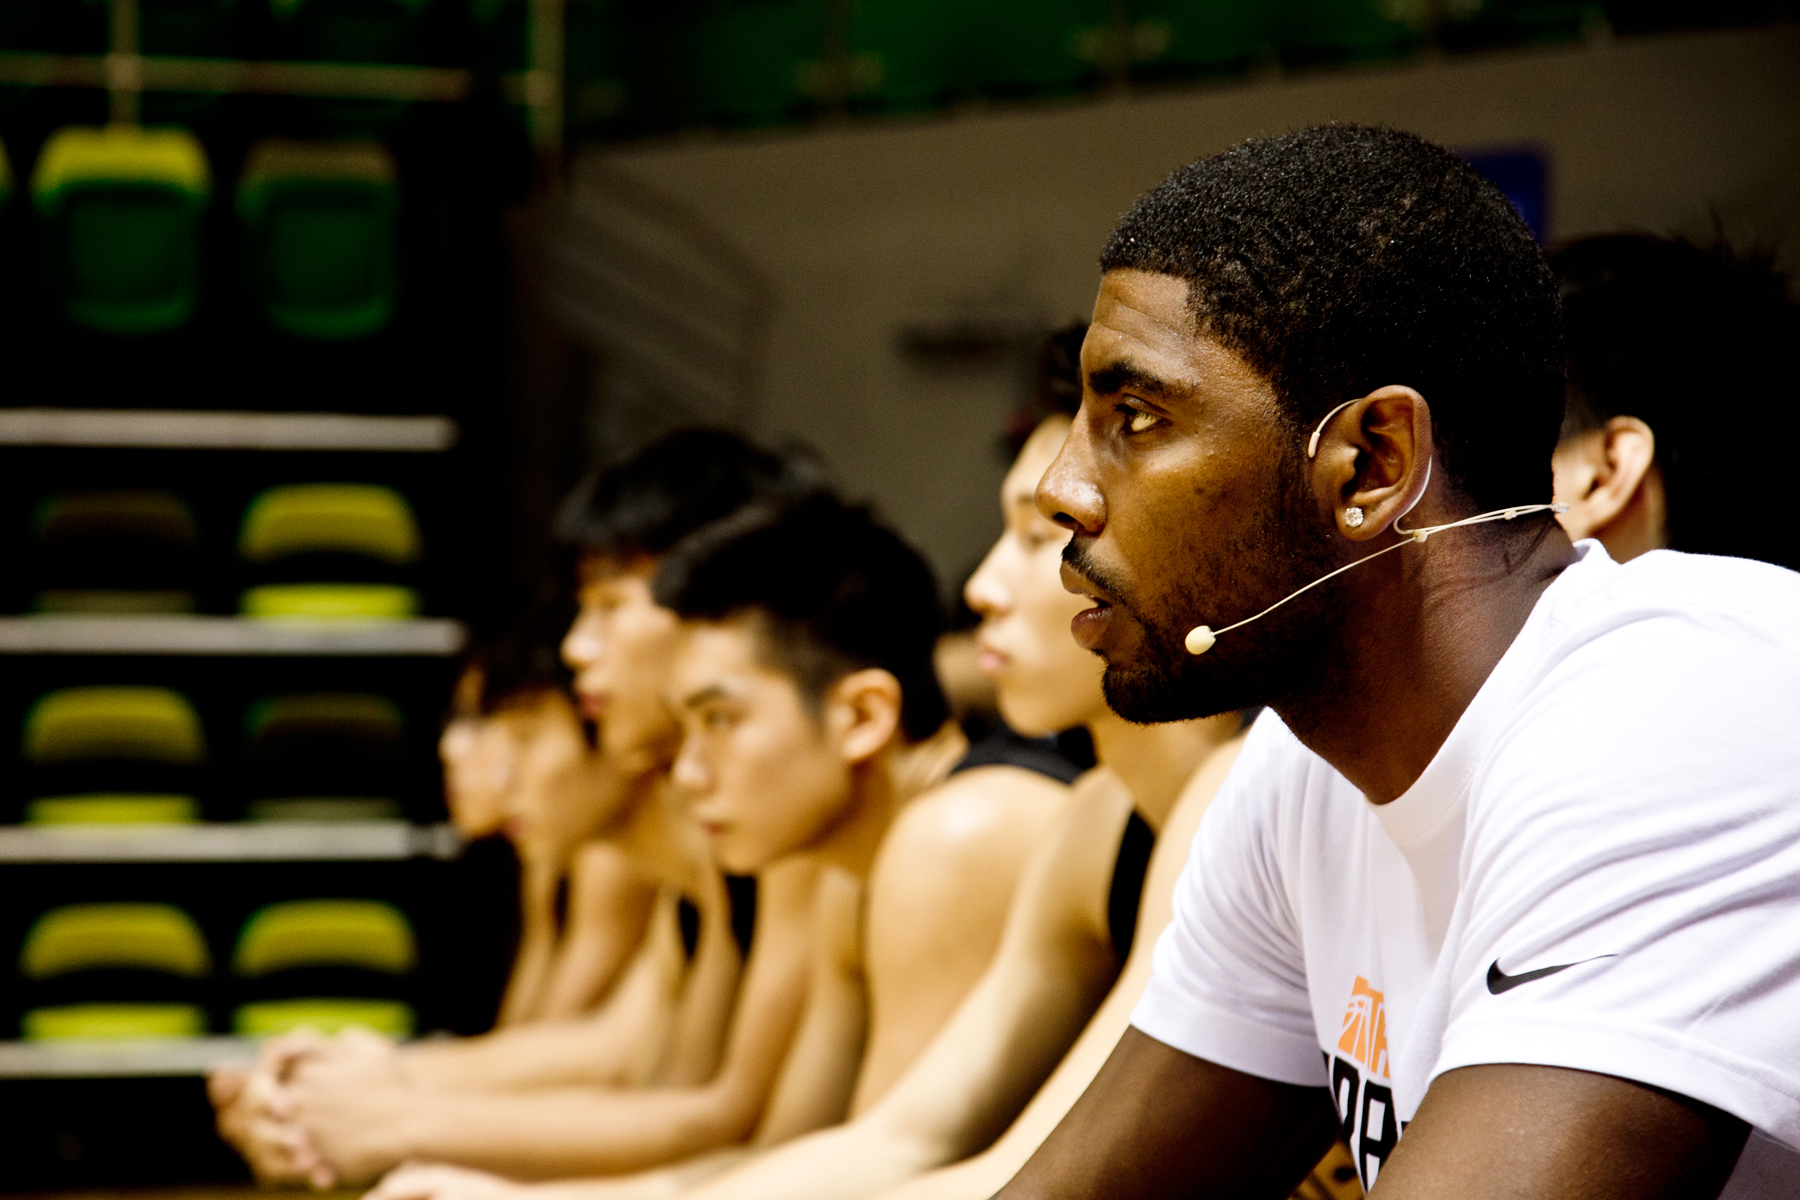 kyrie irving talks shoes the number one draft pick and more